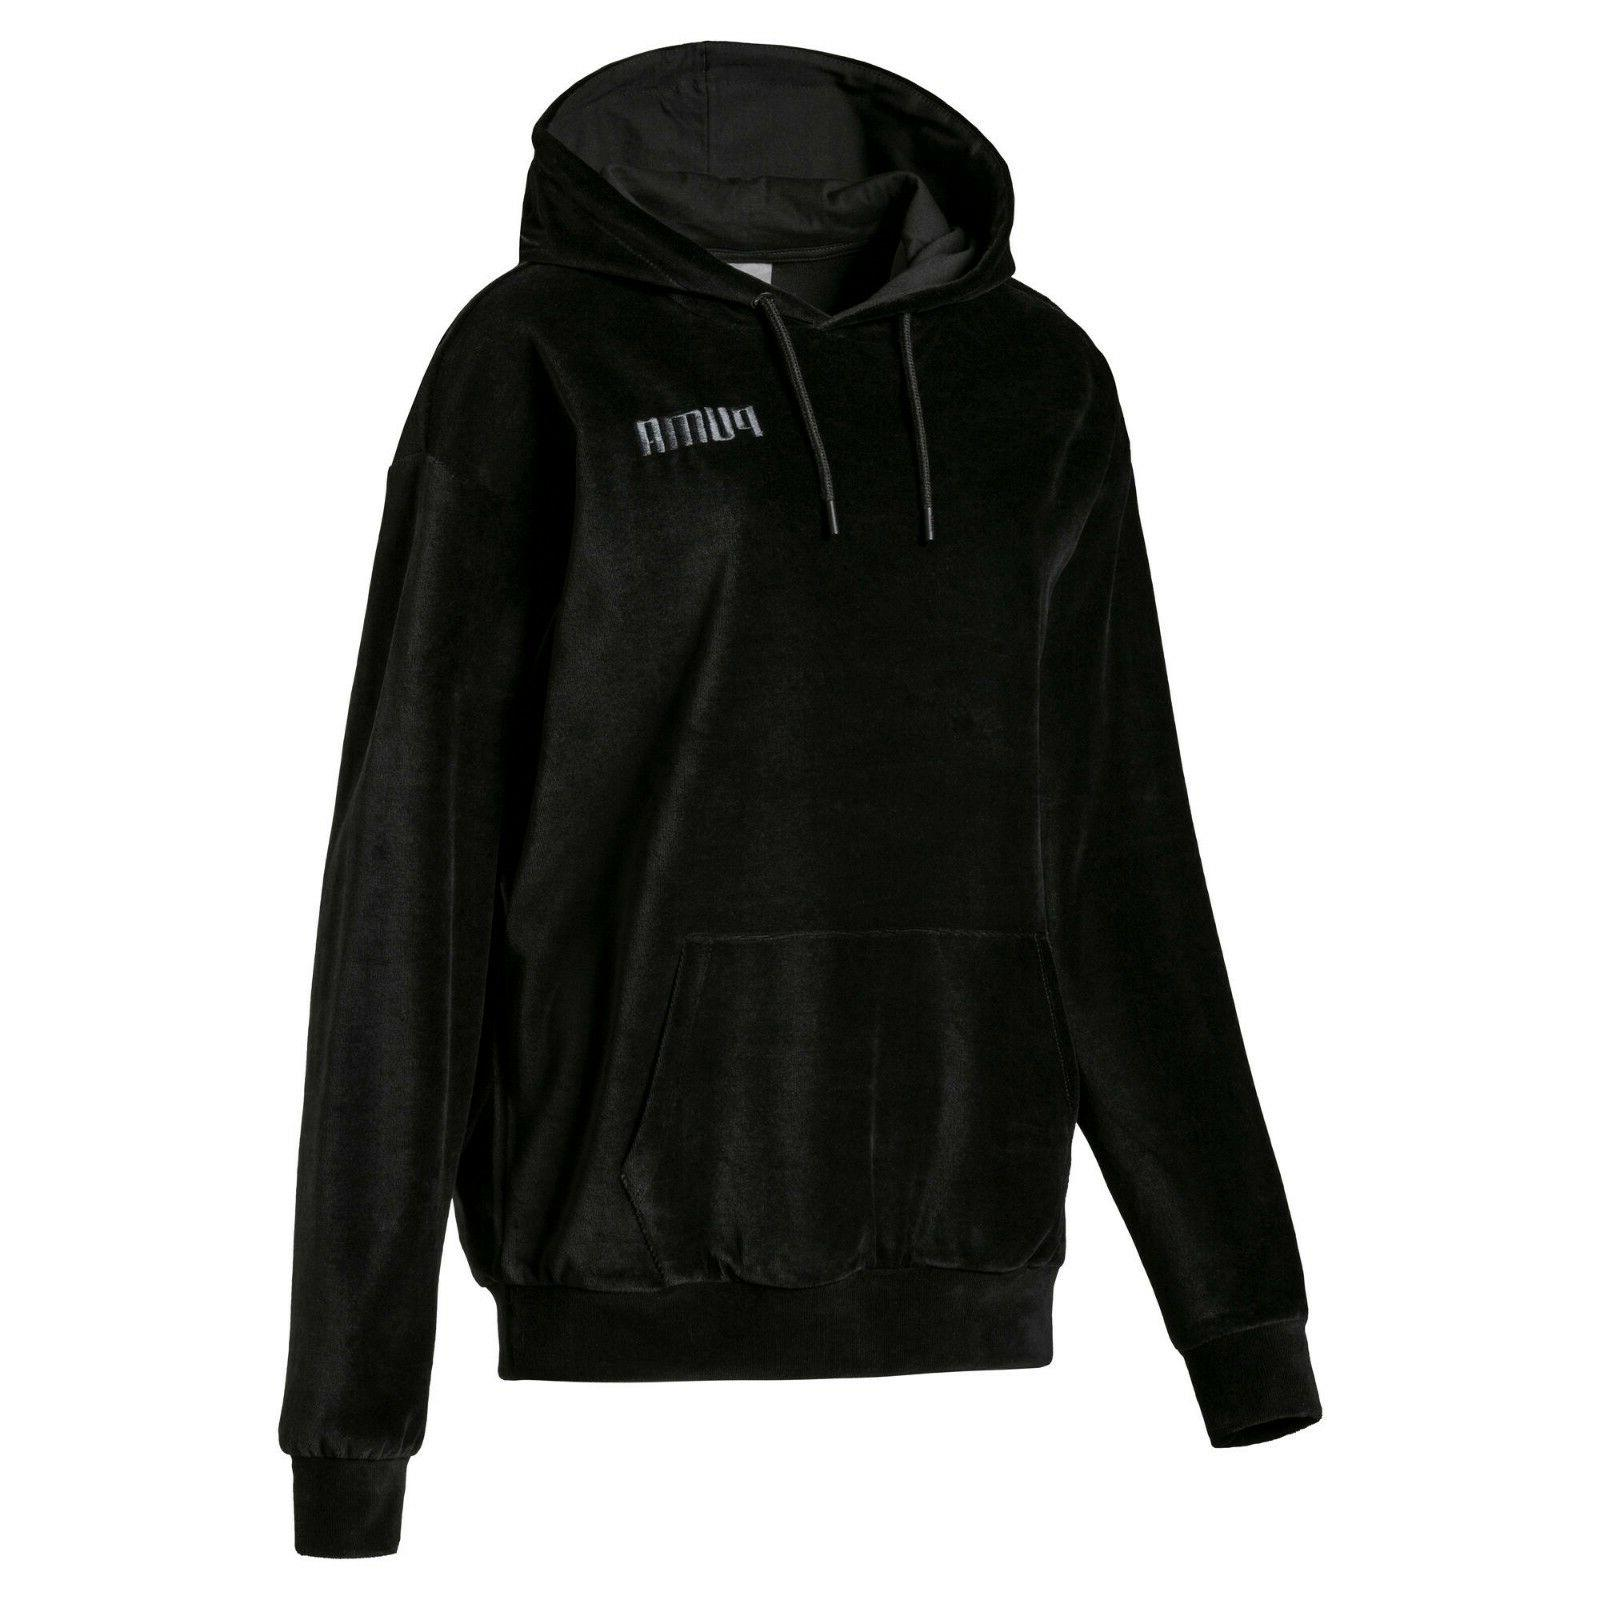 PUMA WOMEN'S HOODIE VELVET ALL BLACK PUMA LOGO CASUAL FORMAL